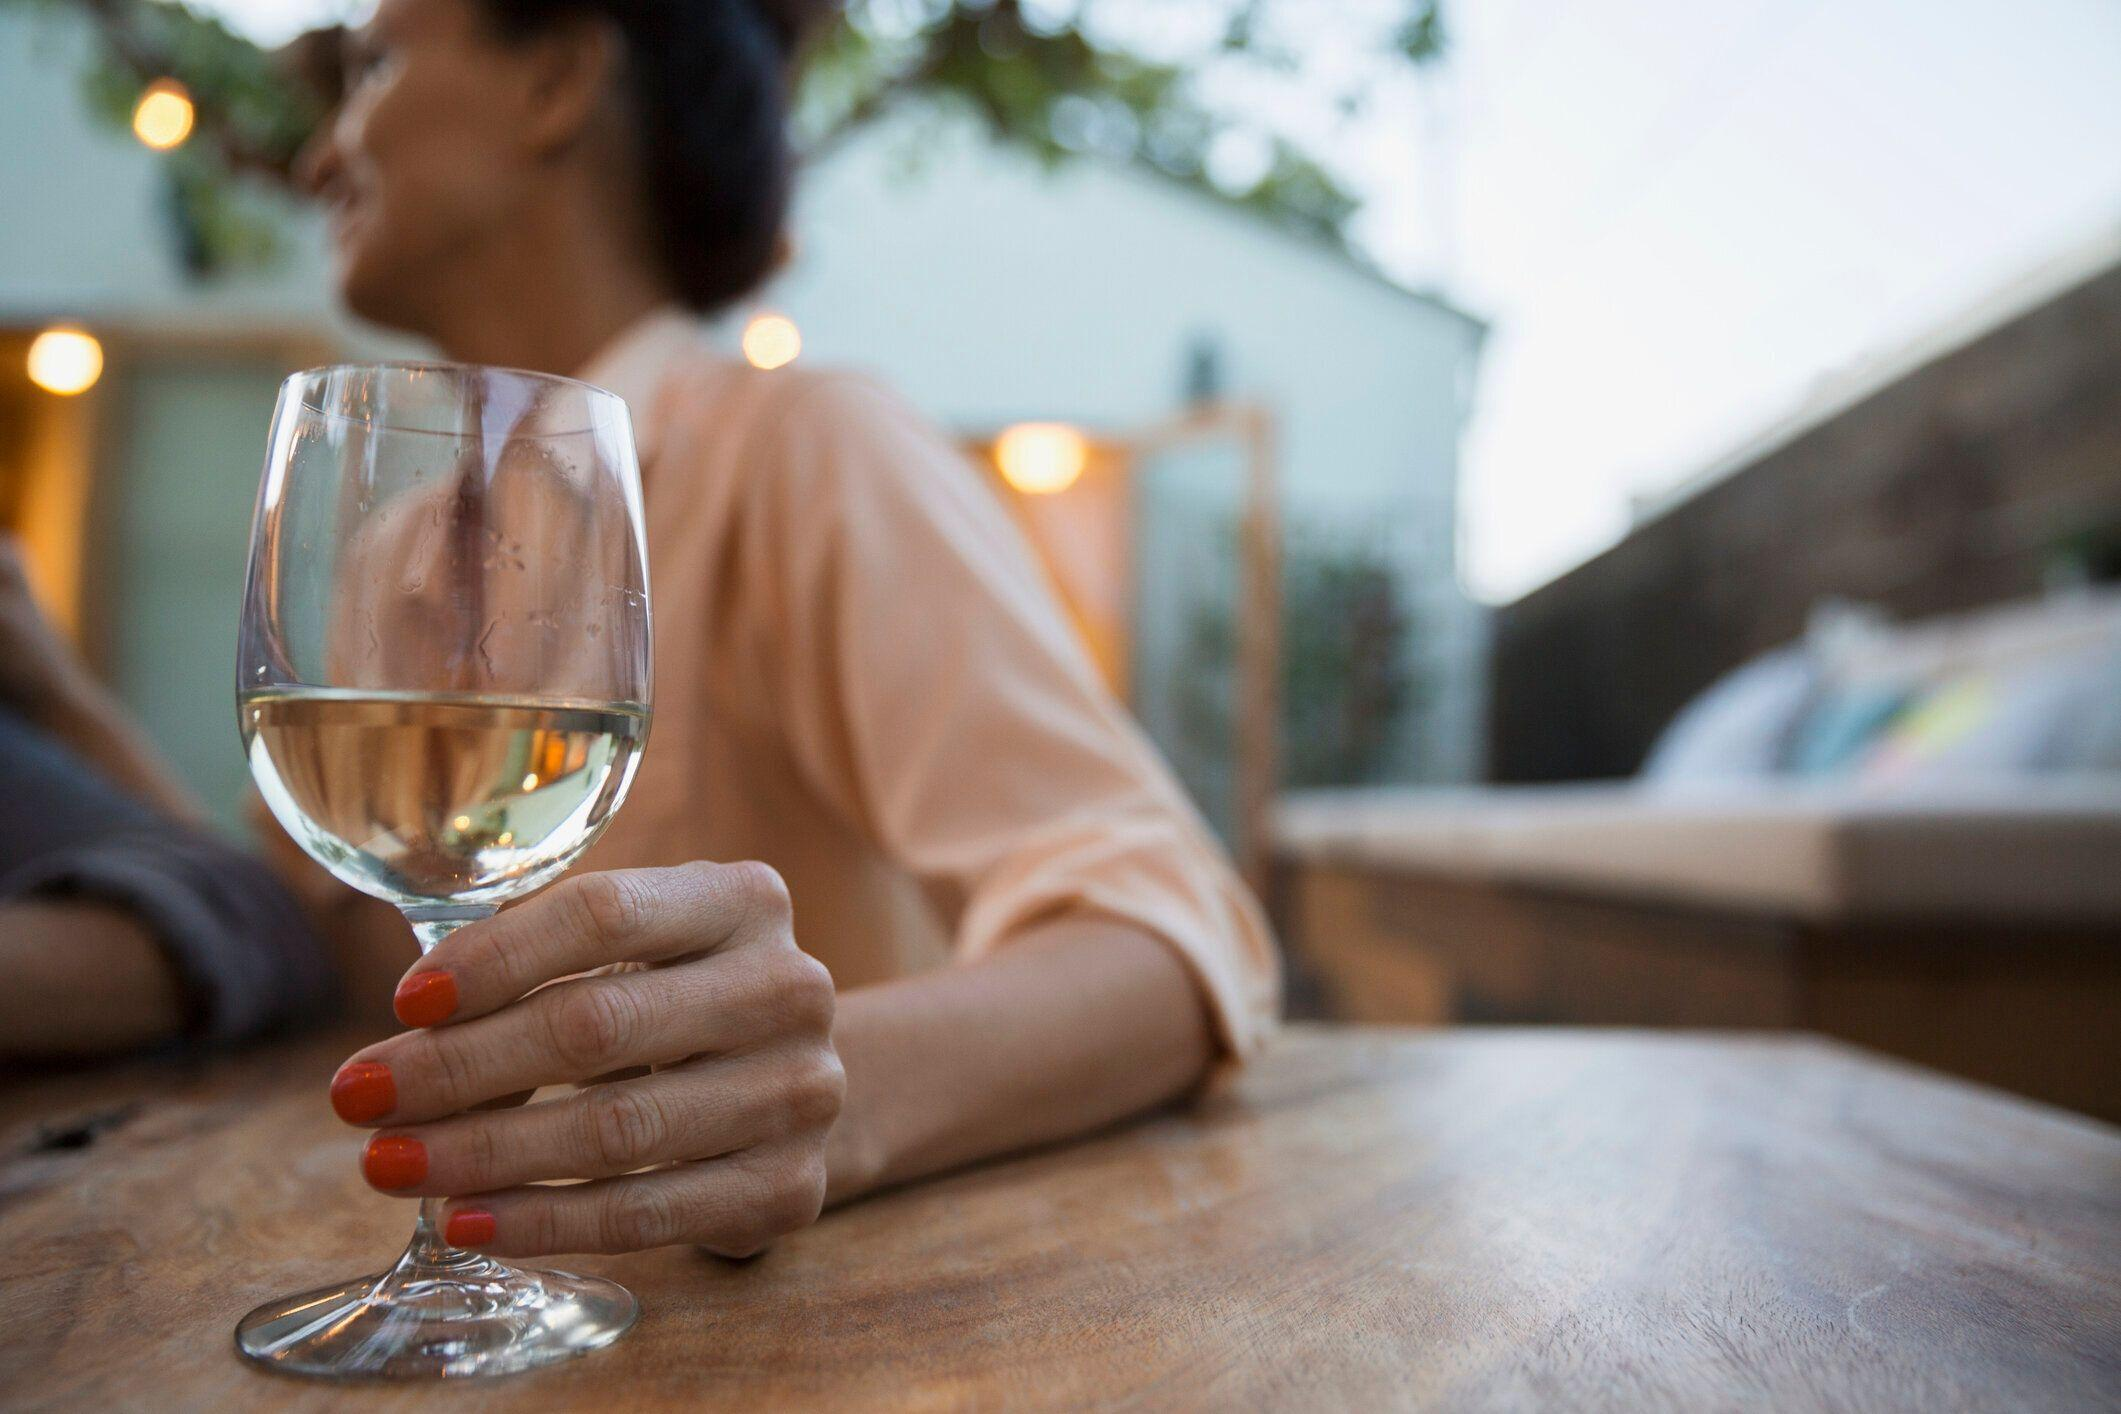 Whether you drink red or white wine says a lot about your personality